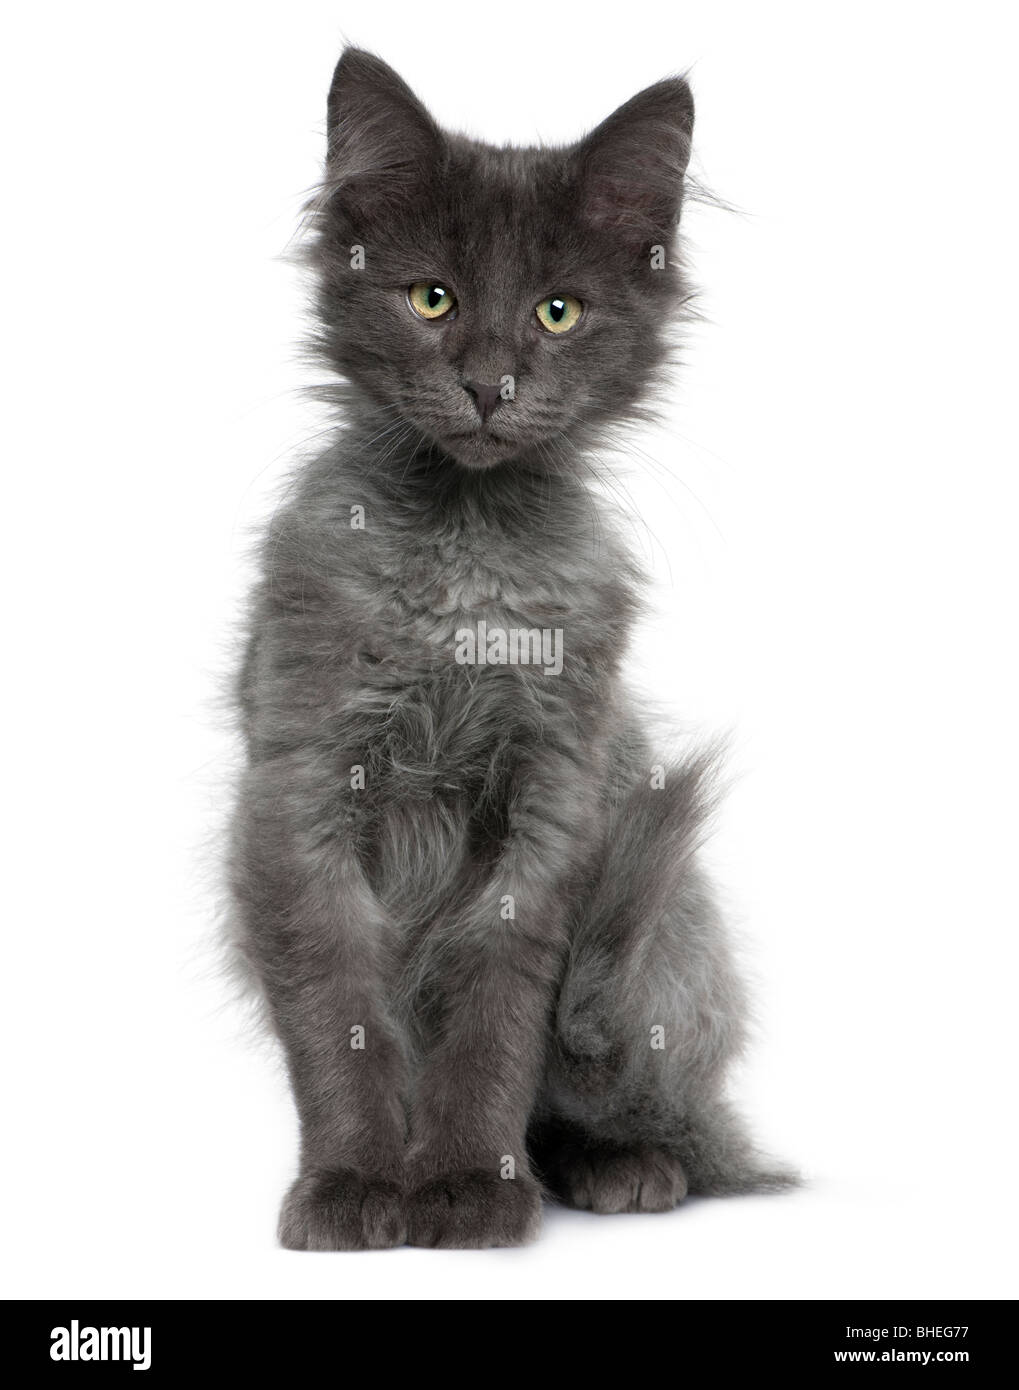 Norwegian Forest Cat, 4 months old, in front of a white background Stock Photo